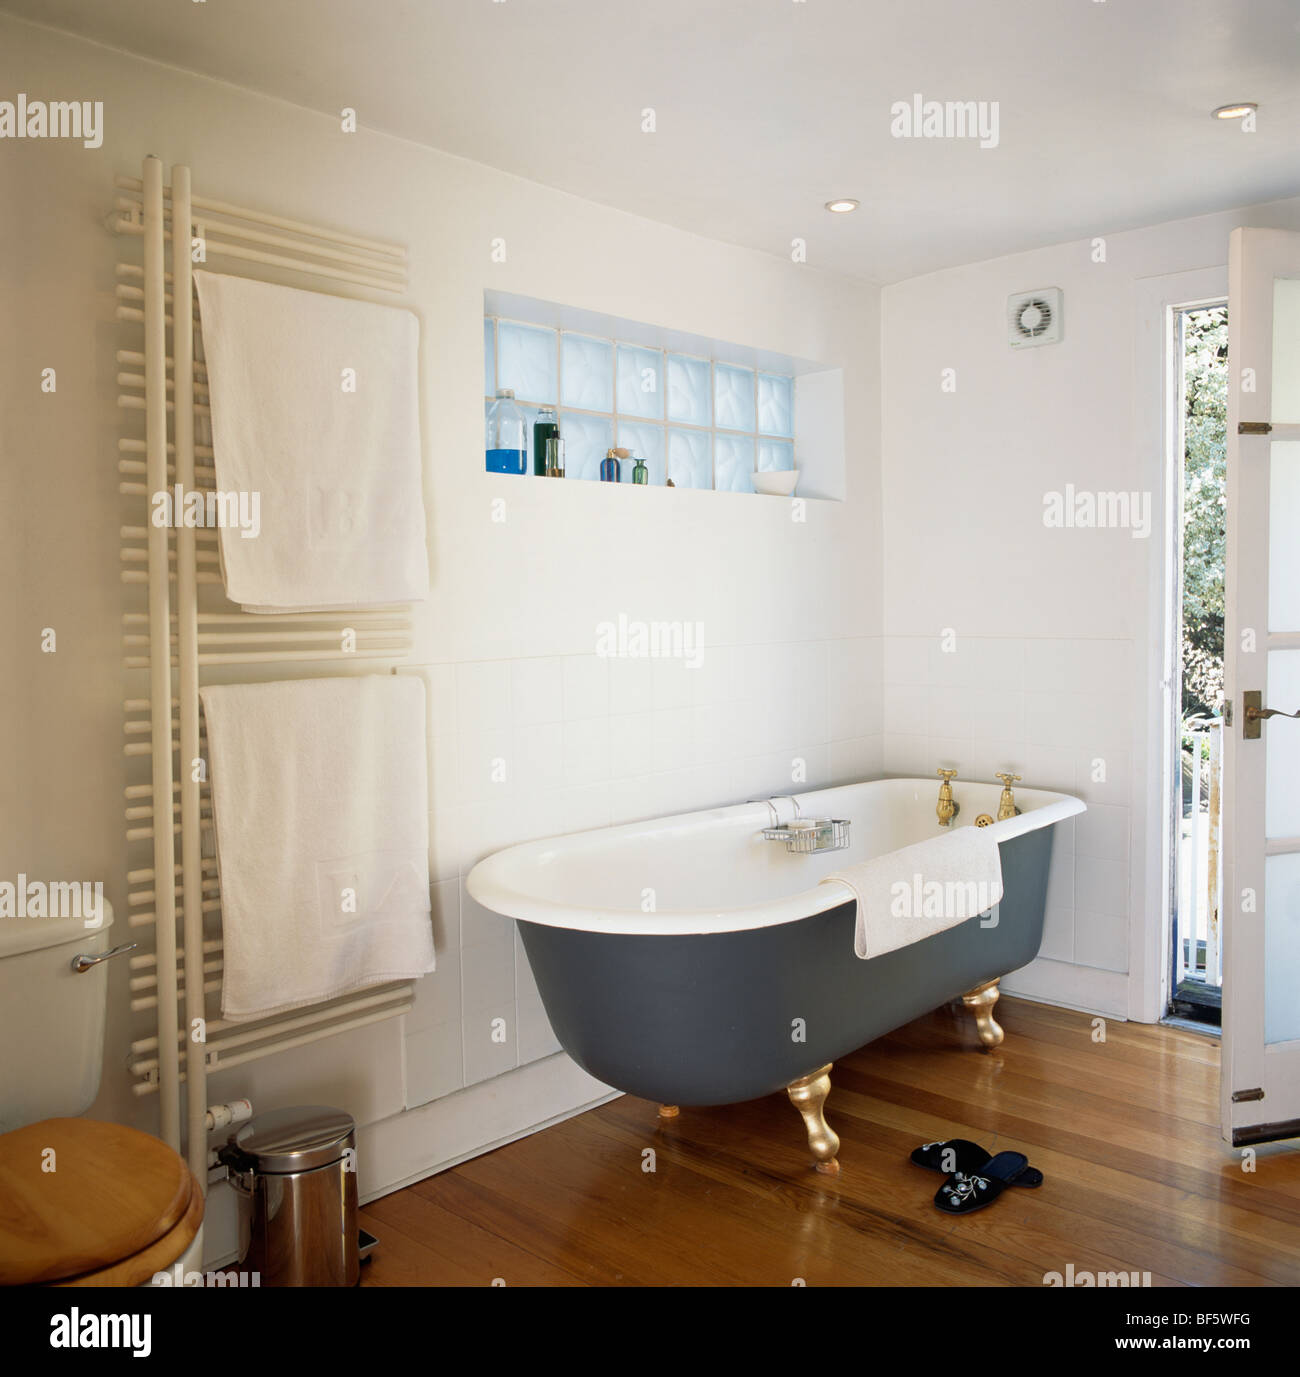 Black Roll Top Bath And Wooden Flooring In Modern White